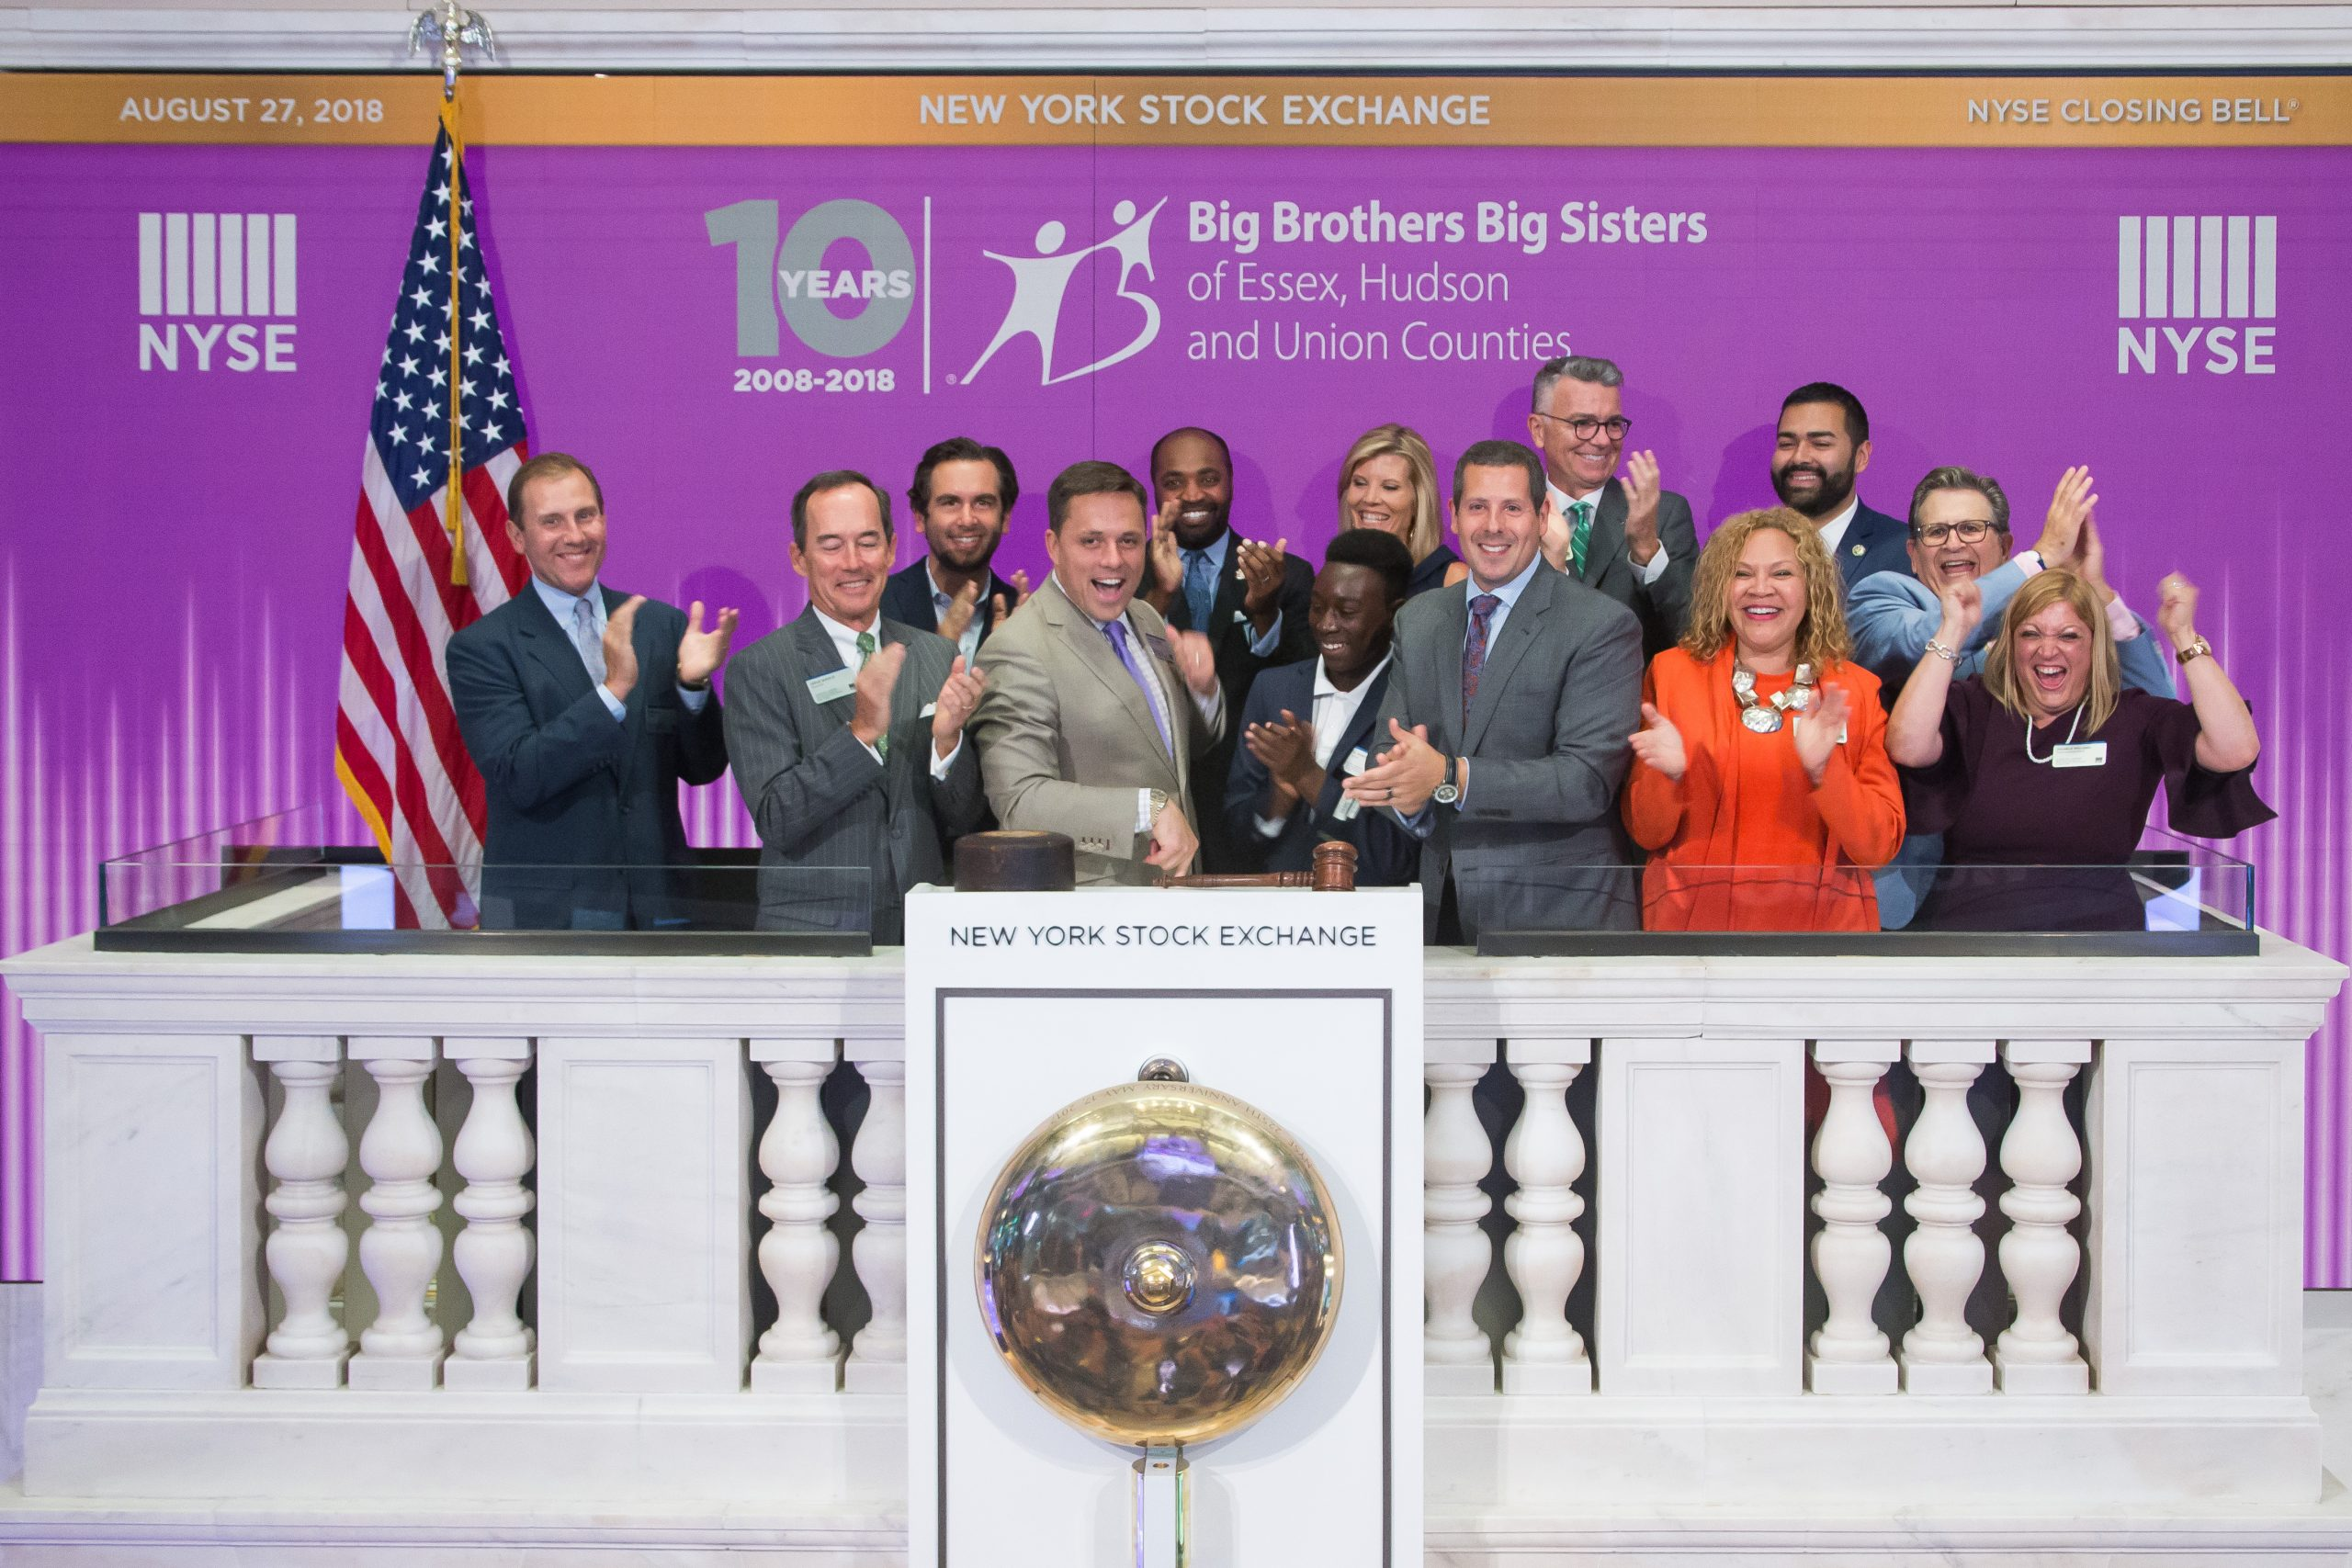 Peter McRae and Big Brothers Big Sisters rings the closing bell at the NYSE